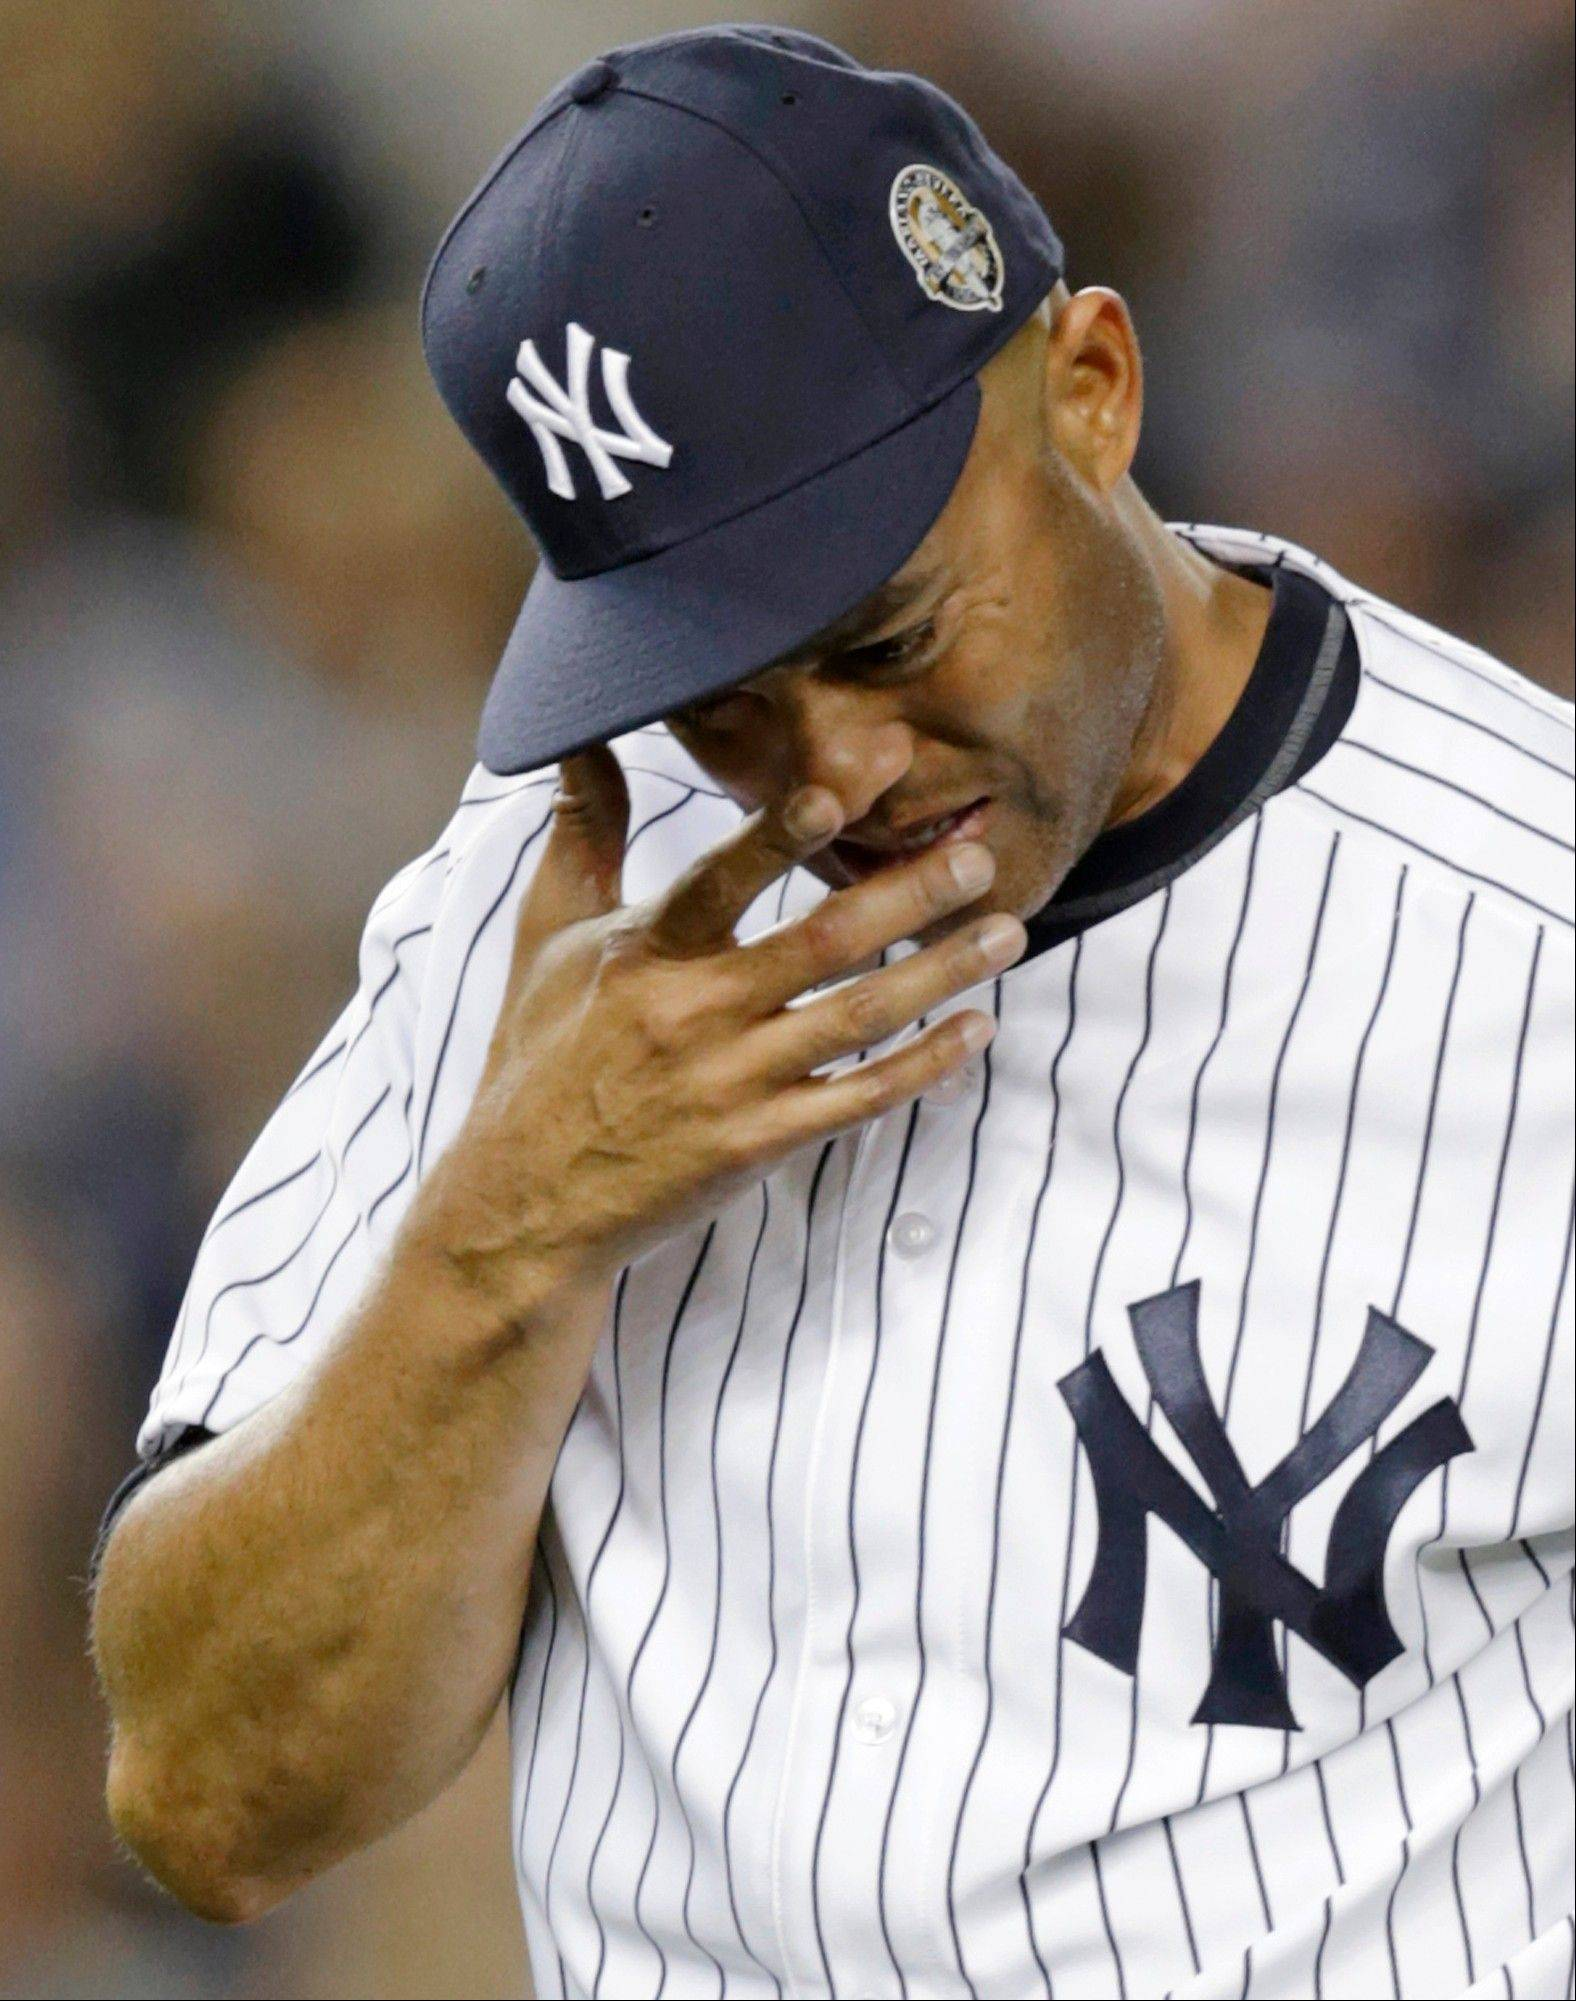 New York Yankees relief pitcher Mariano Rivera cries as he leaves Thursday's game with two outs in the ninth inning of his final appearance at Yankee Stadium.